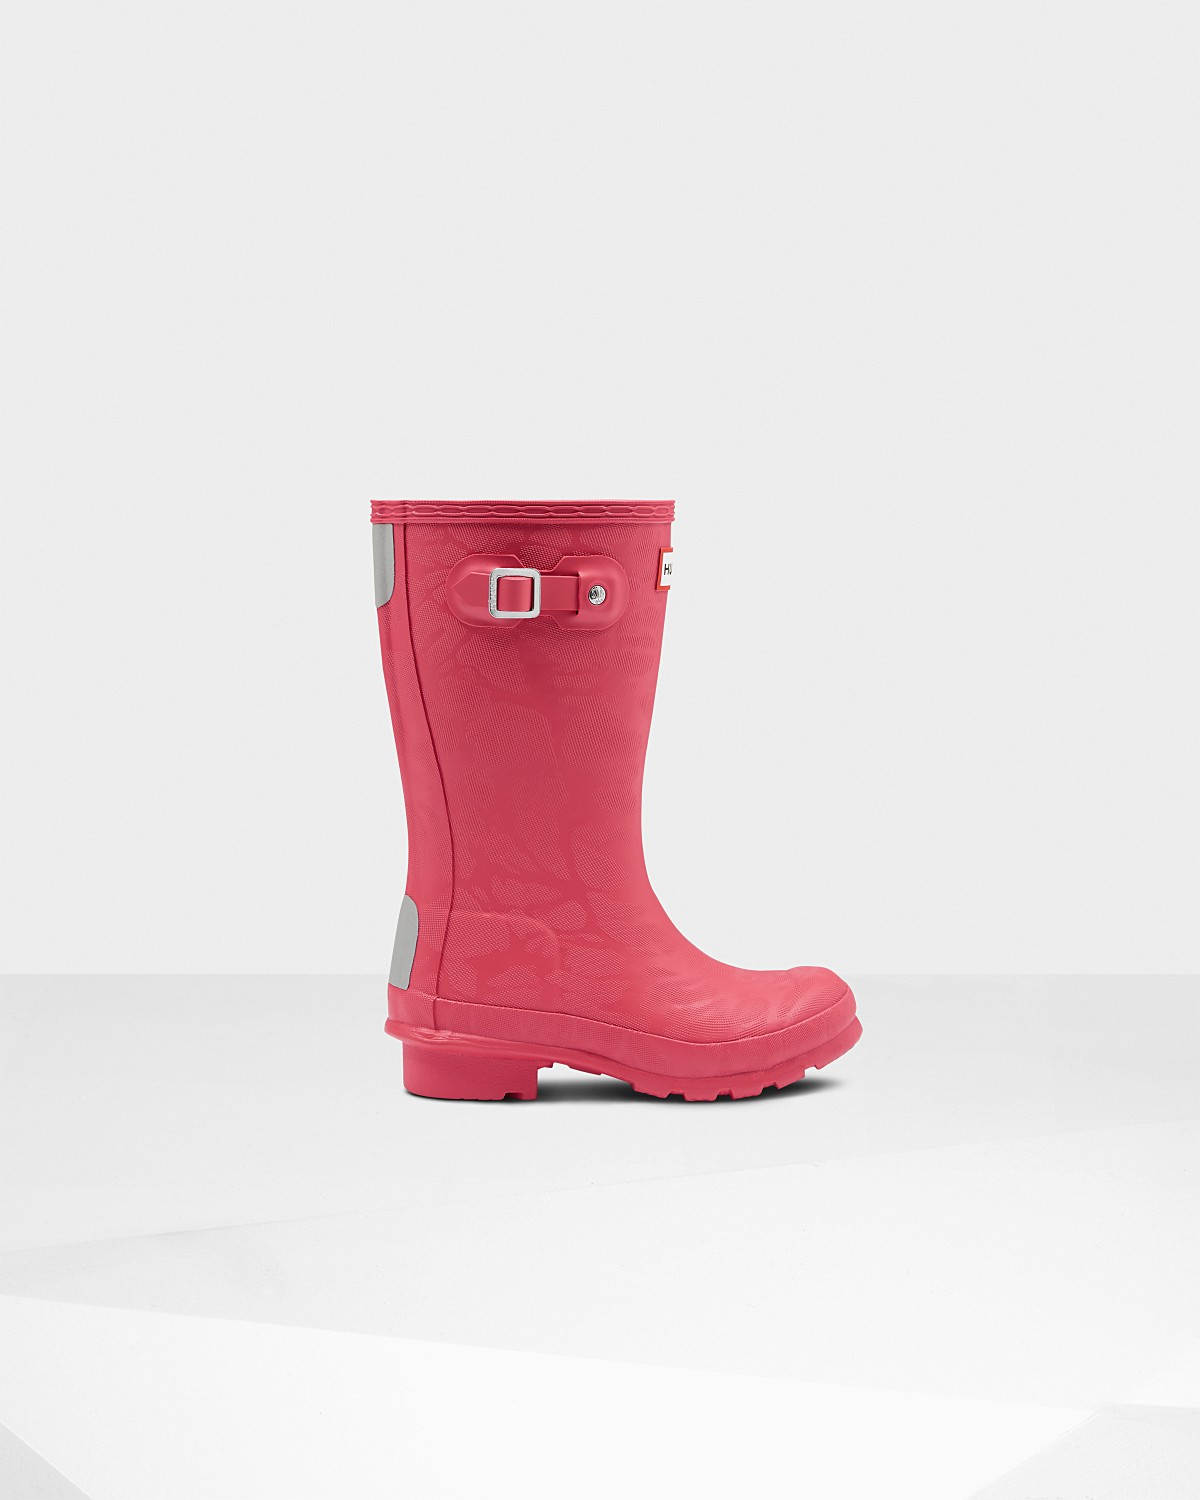 fd15485c9 Big Kids Red Original Kids Insulated Rain Boots